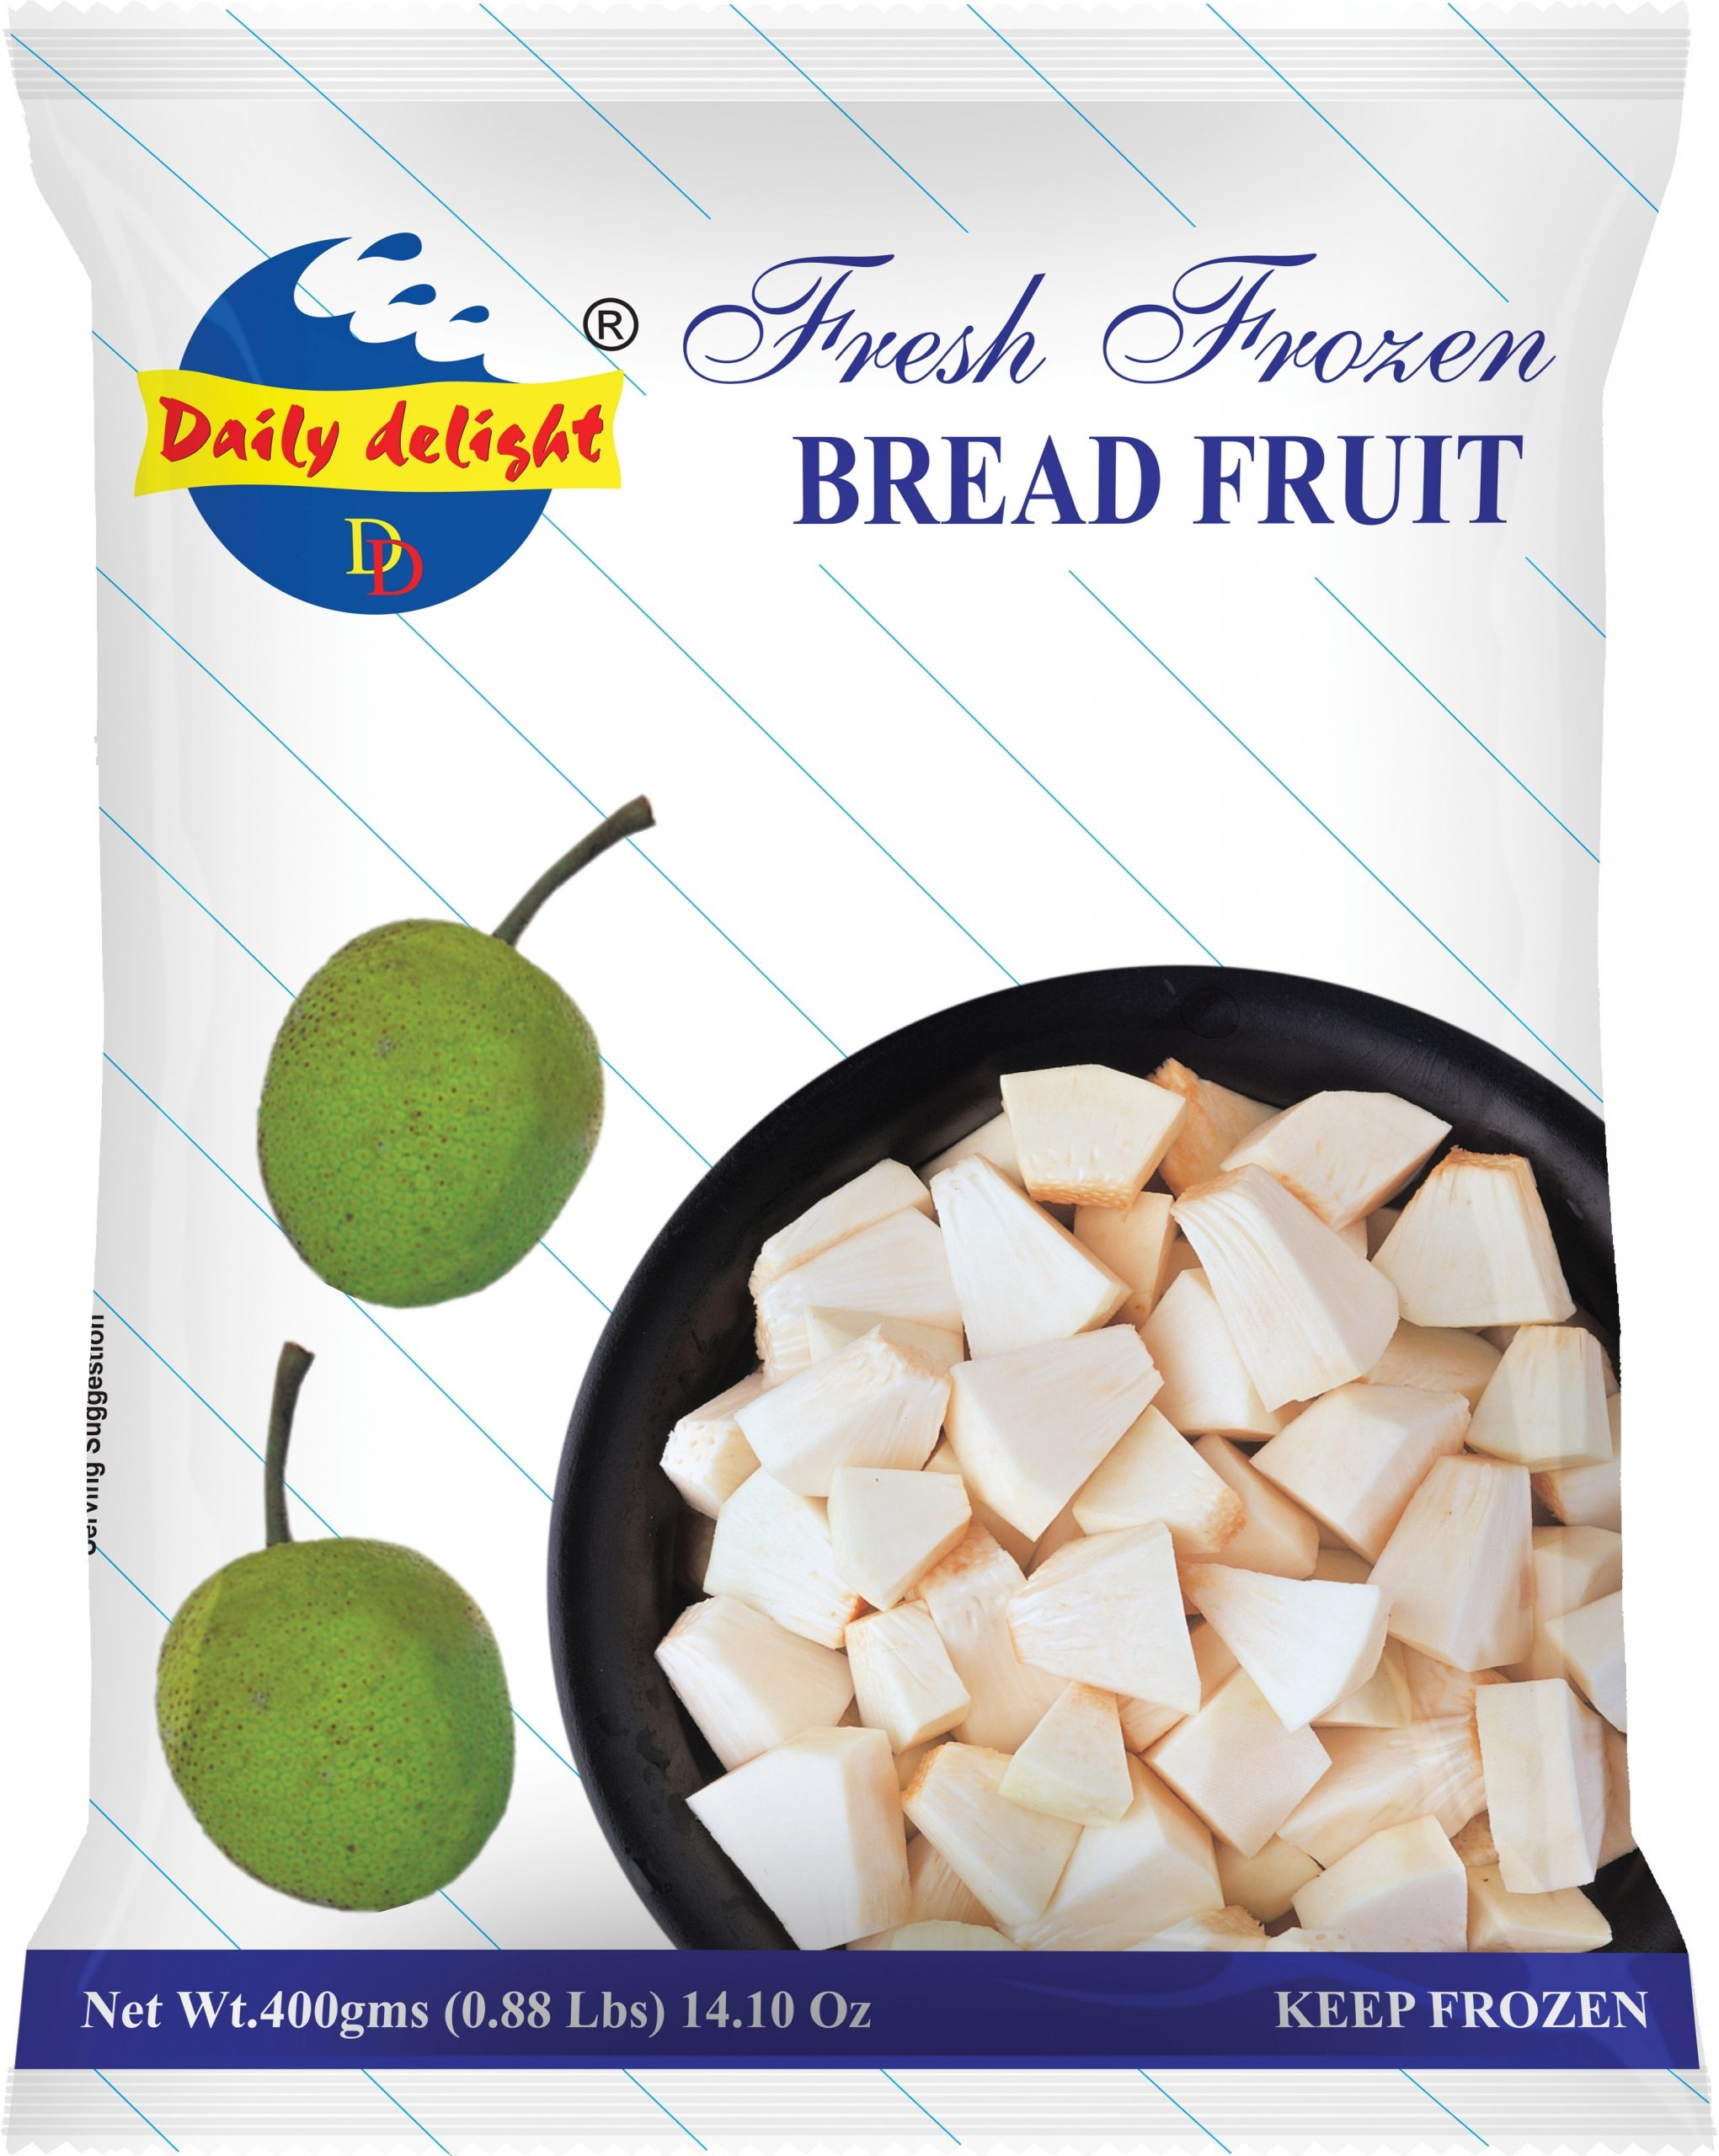 Daily Delight Bread Fruit